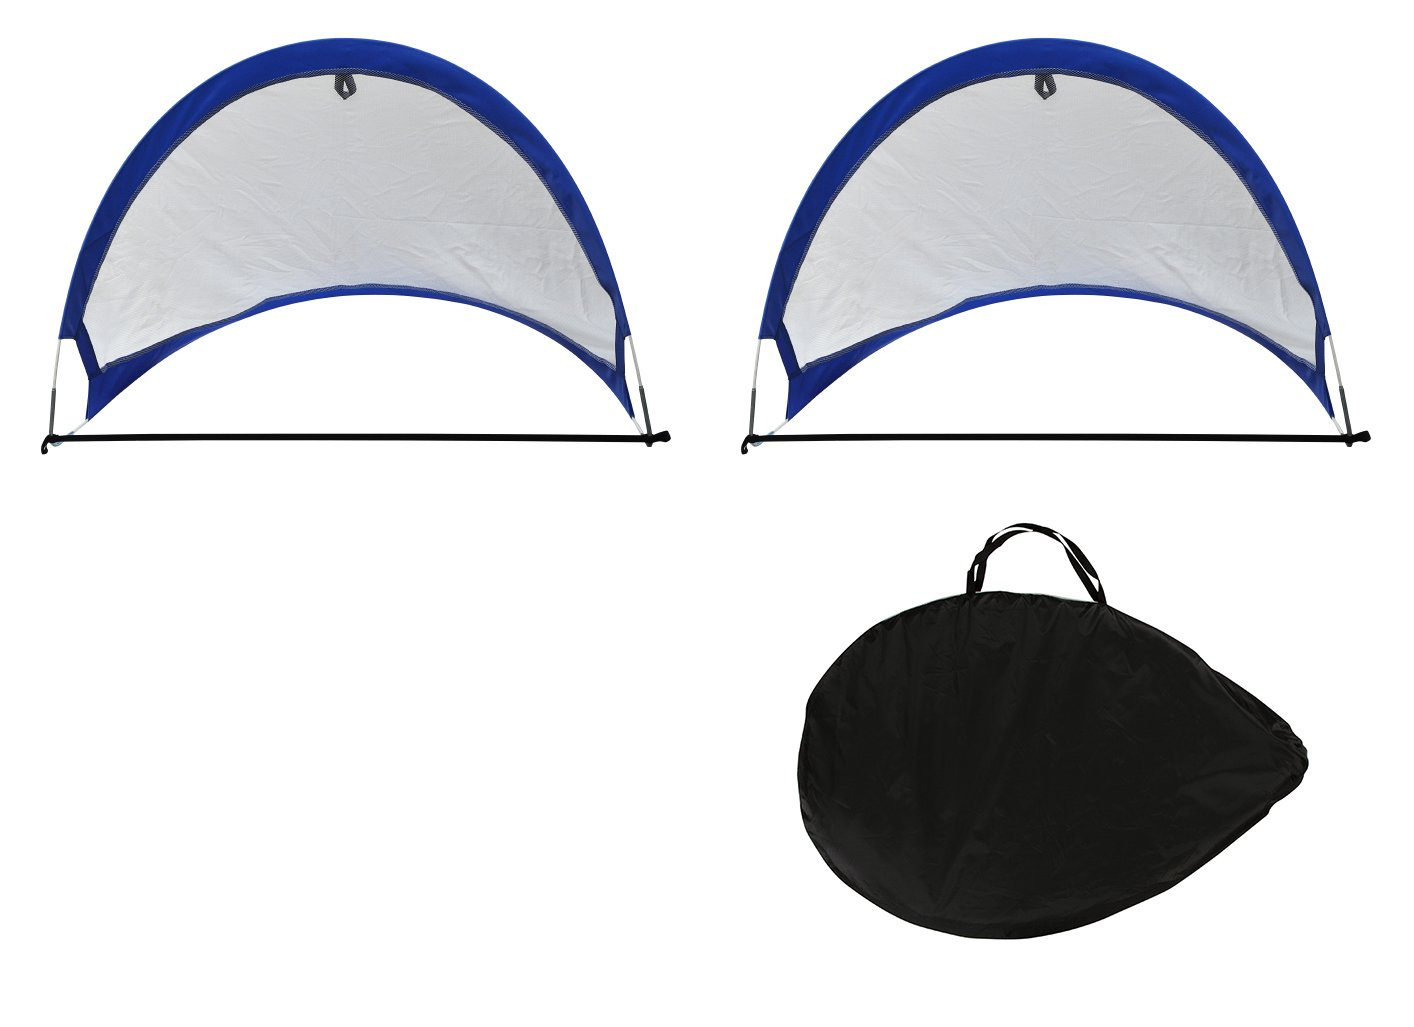 Trademark Innovations 4/' Soccer Goals Mesh Portable Goals with Carry Case /& Stakes Set of 2